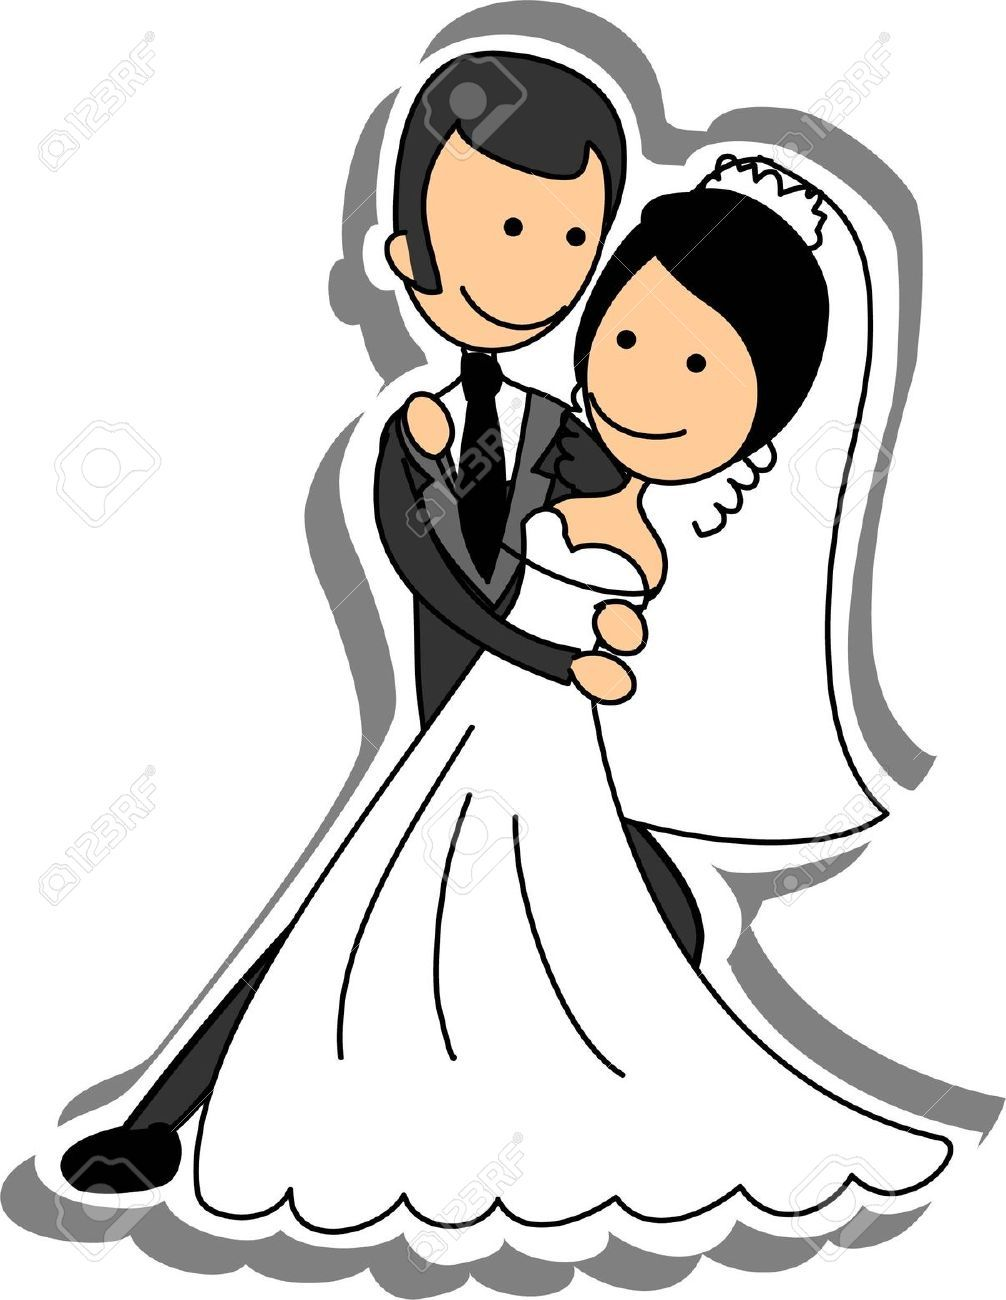 medium resolution of wedding picture bride and groom in love royalty free cliparts